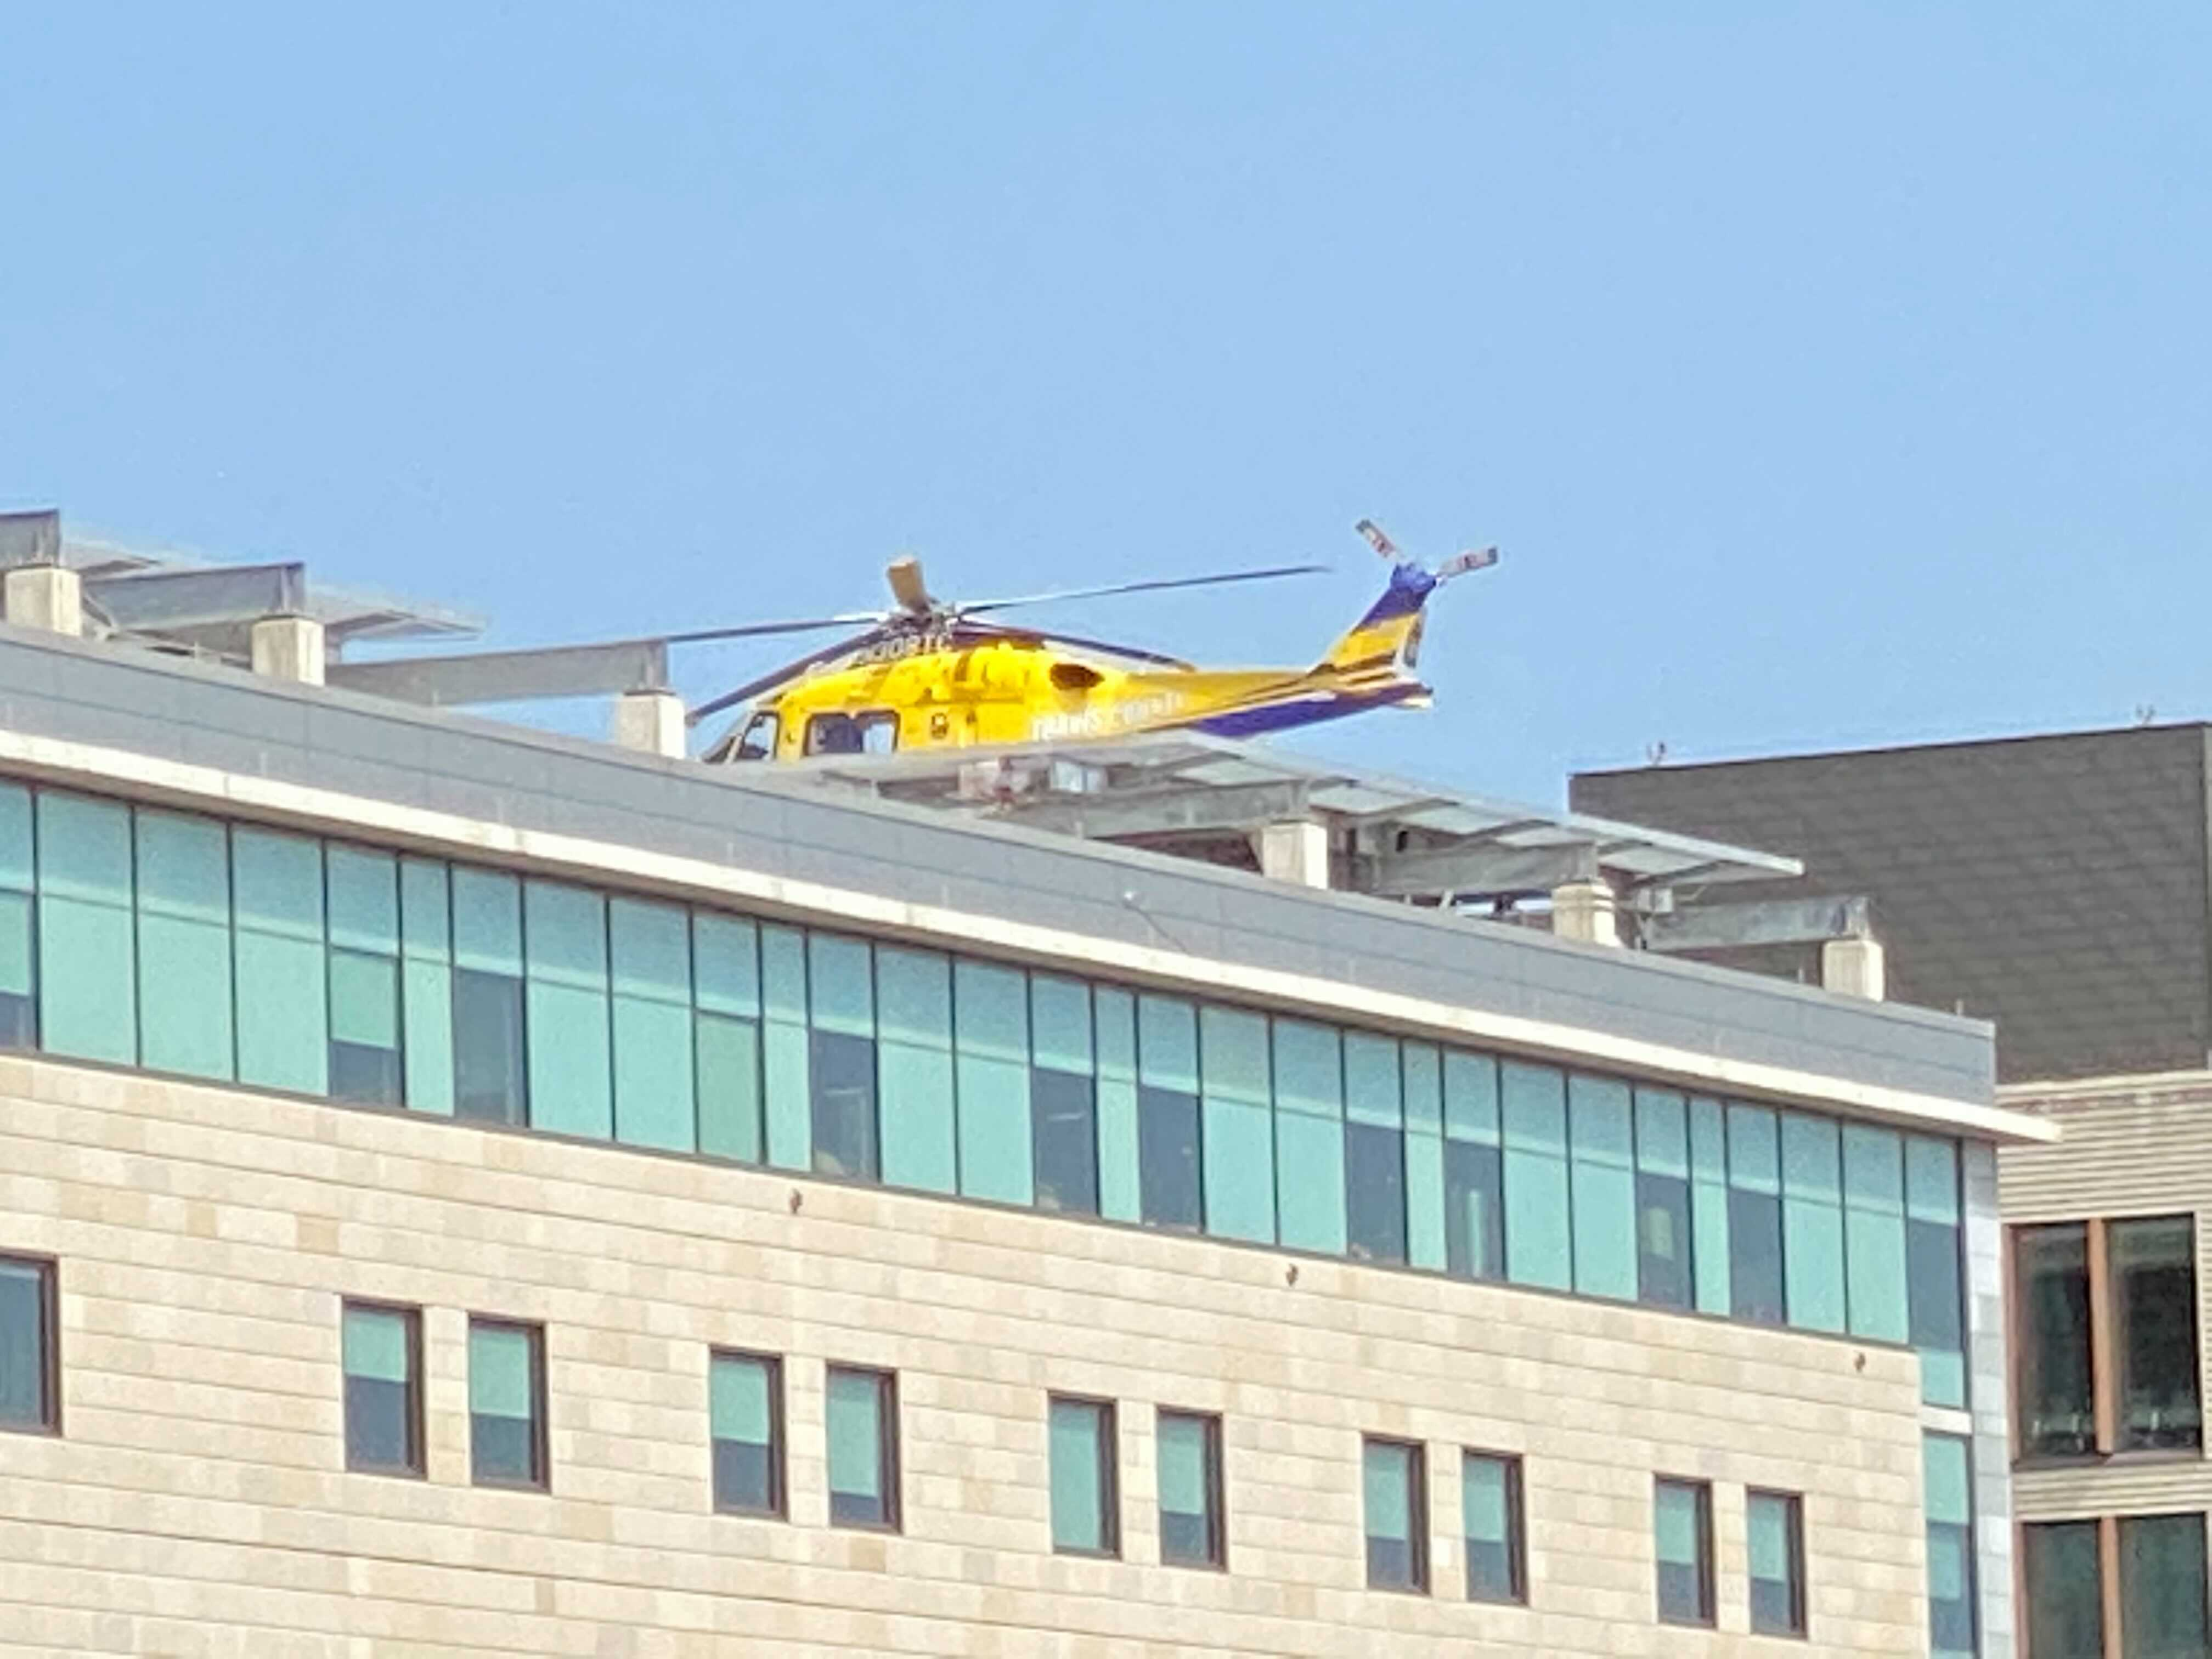 STAR Flight lands at Dell Seton with patient from plane crash (KXAN Photo/Todd Bynum)